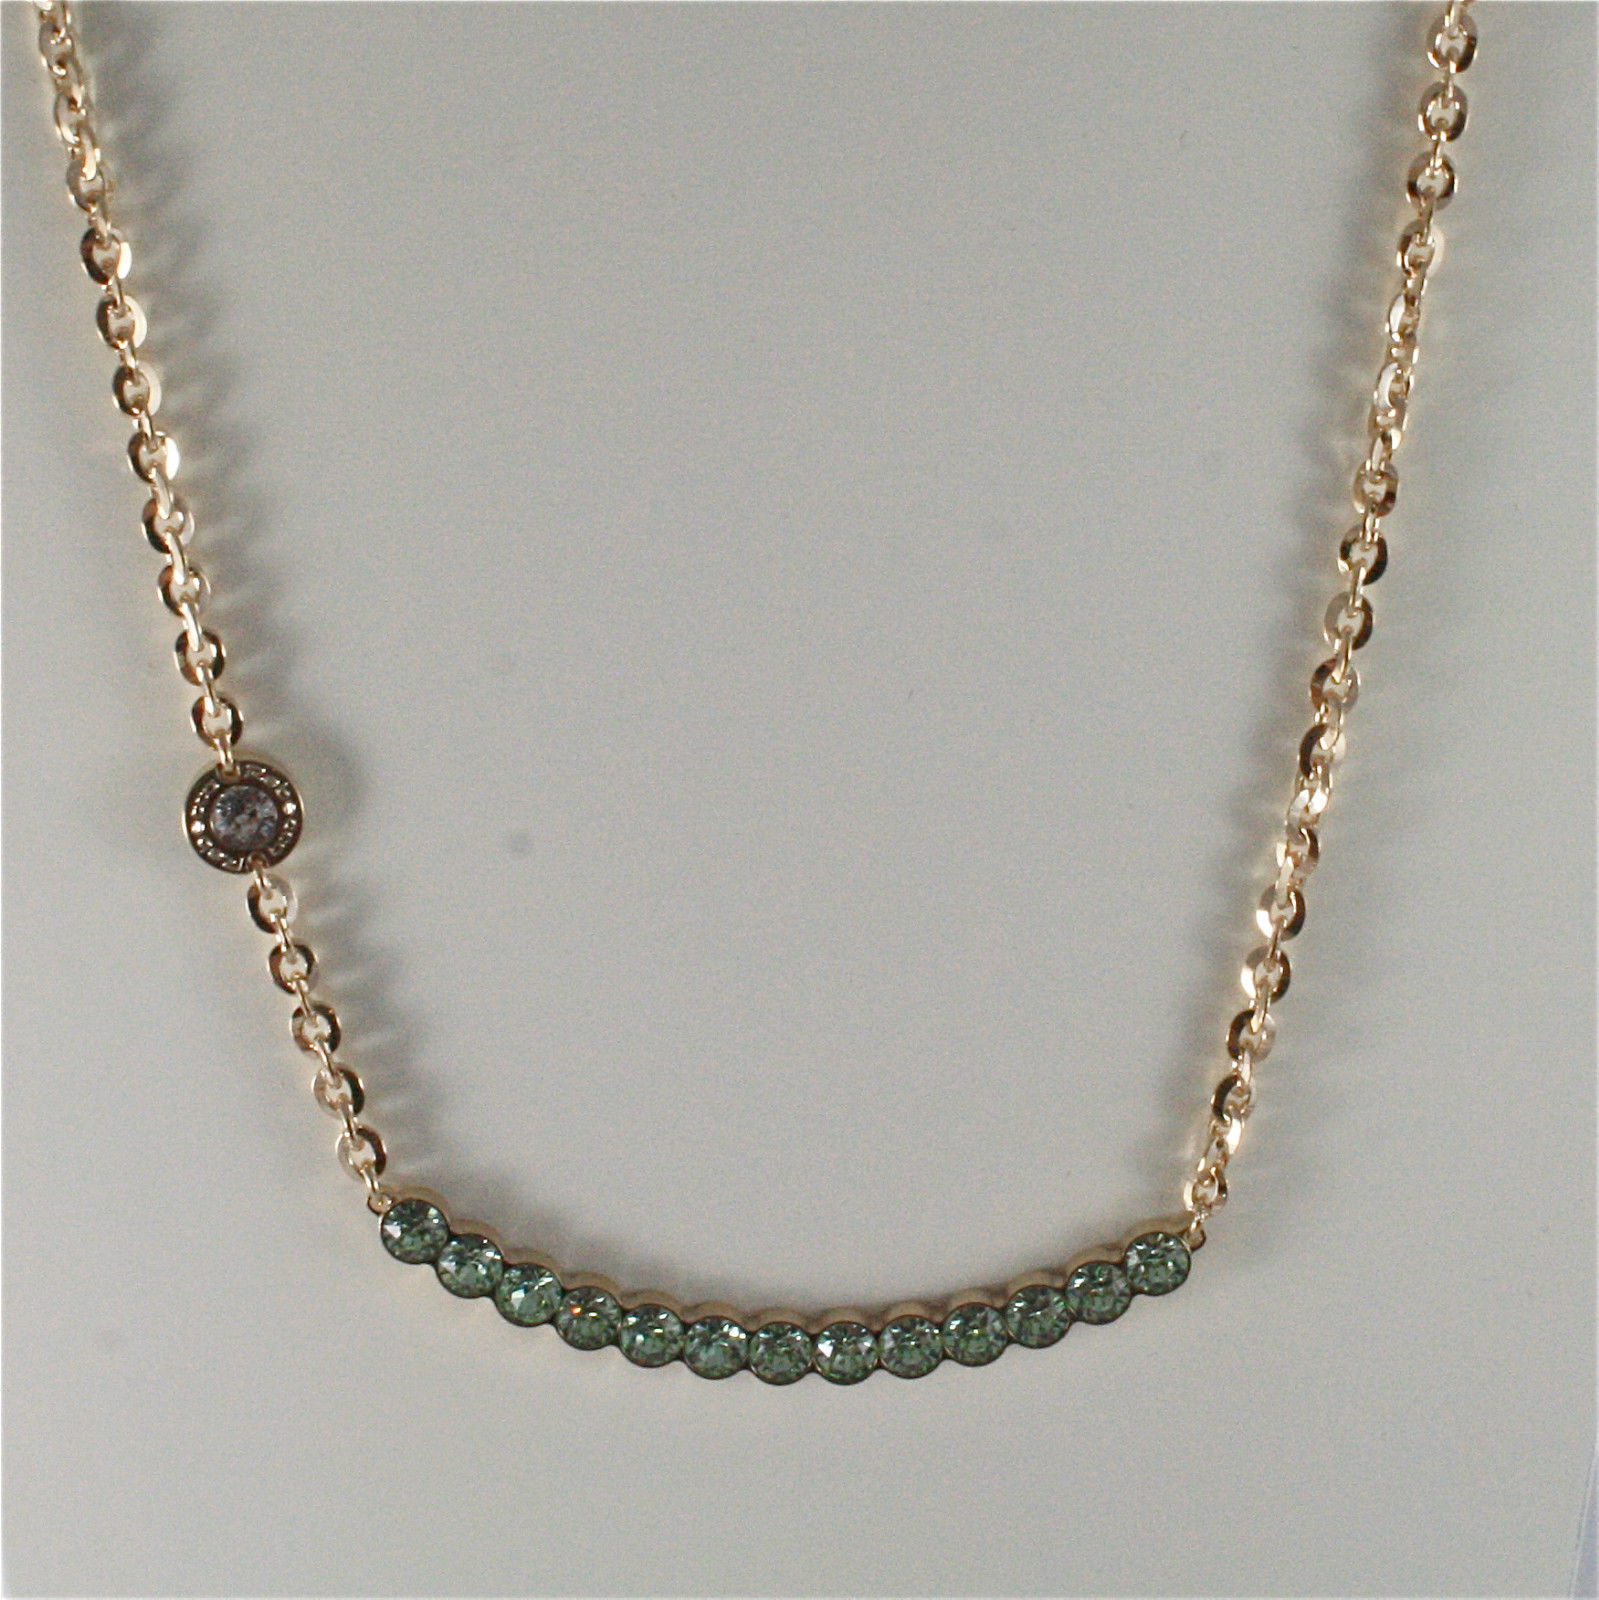 YELLOW GOLD PLATED BRONZE REBECCA TENNIS NECKLACE BPBKOE14 MADE IN ITALY 18.90